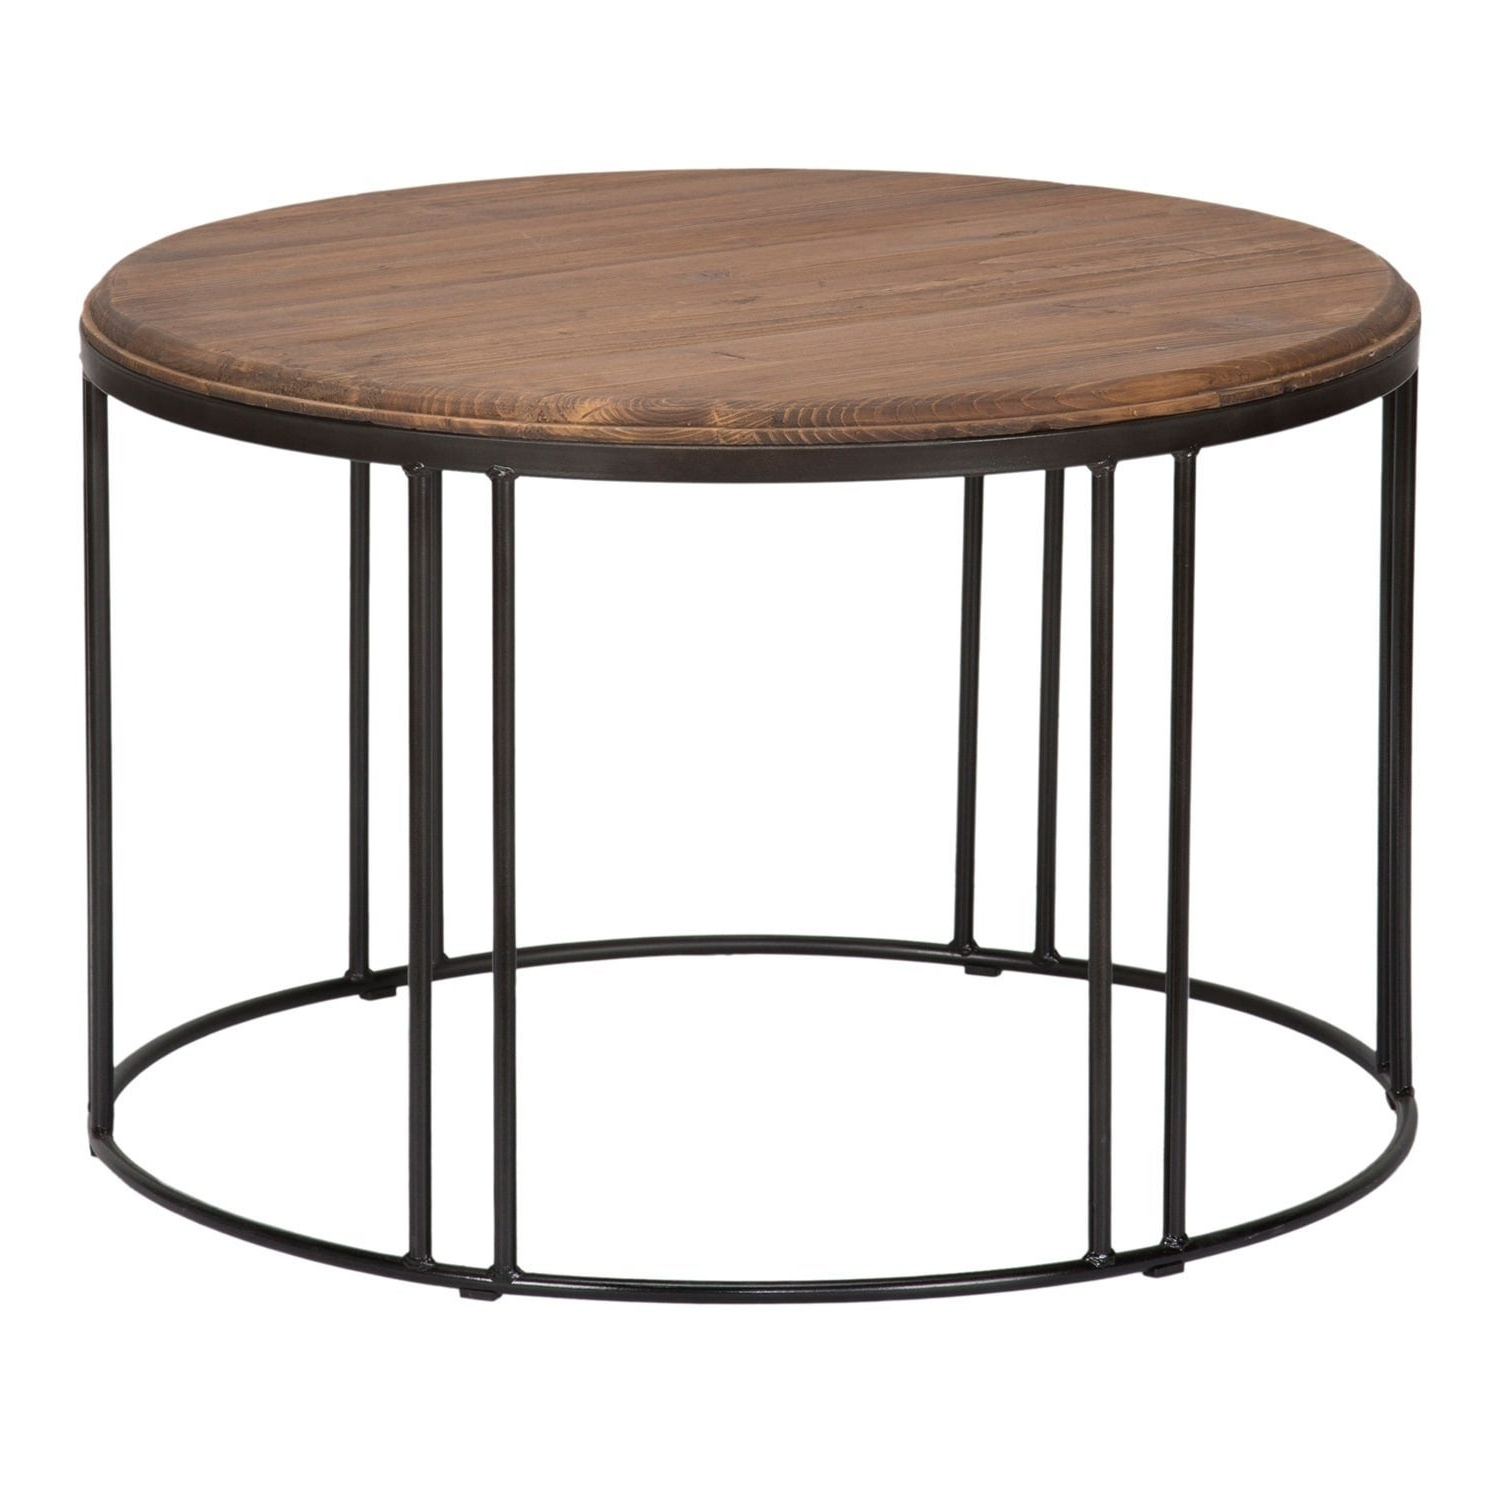 Burnham Reclaimed Wood And Iron Round Coffee Tablekosas Home With Regard To Most Up To Date Burnham Reclaimed Wood And Iron Round Coffee Tables (View 4 of 20)